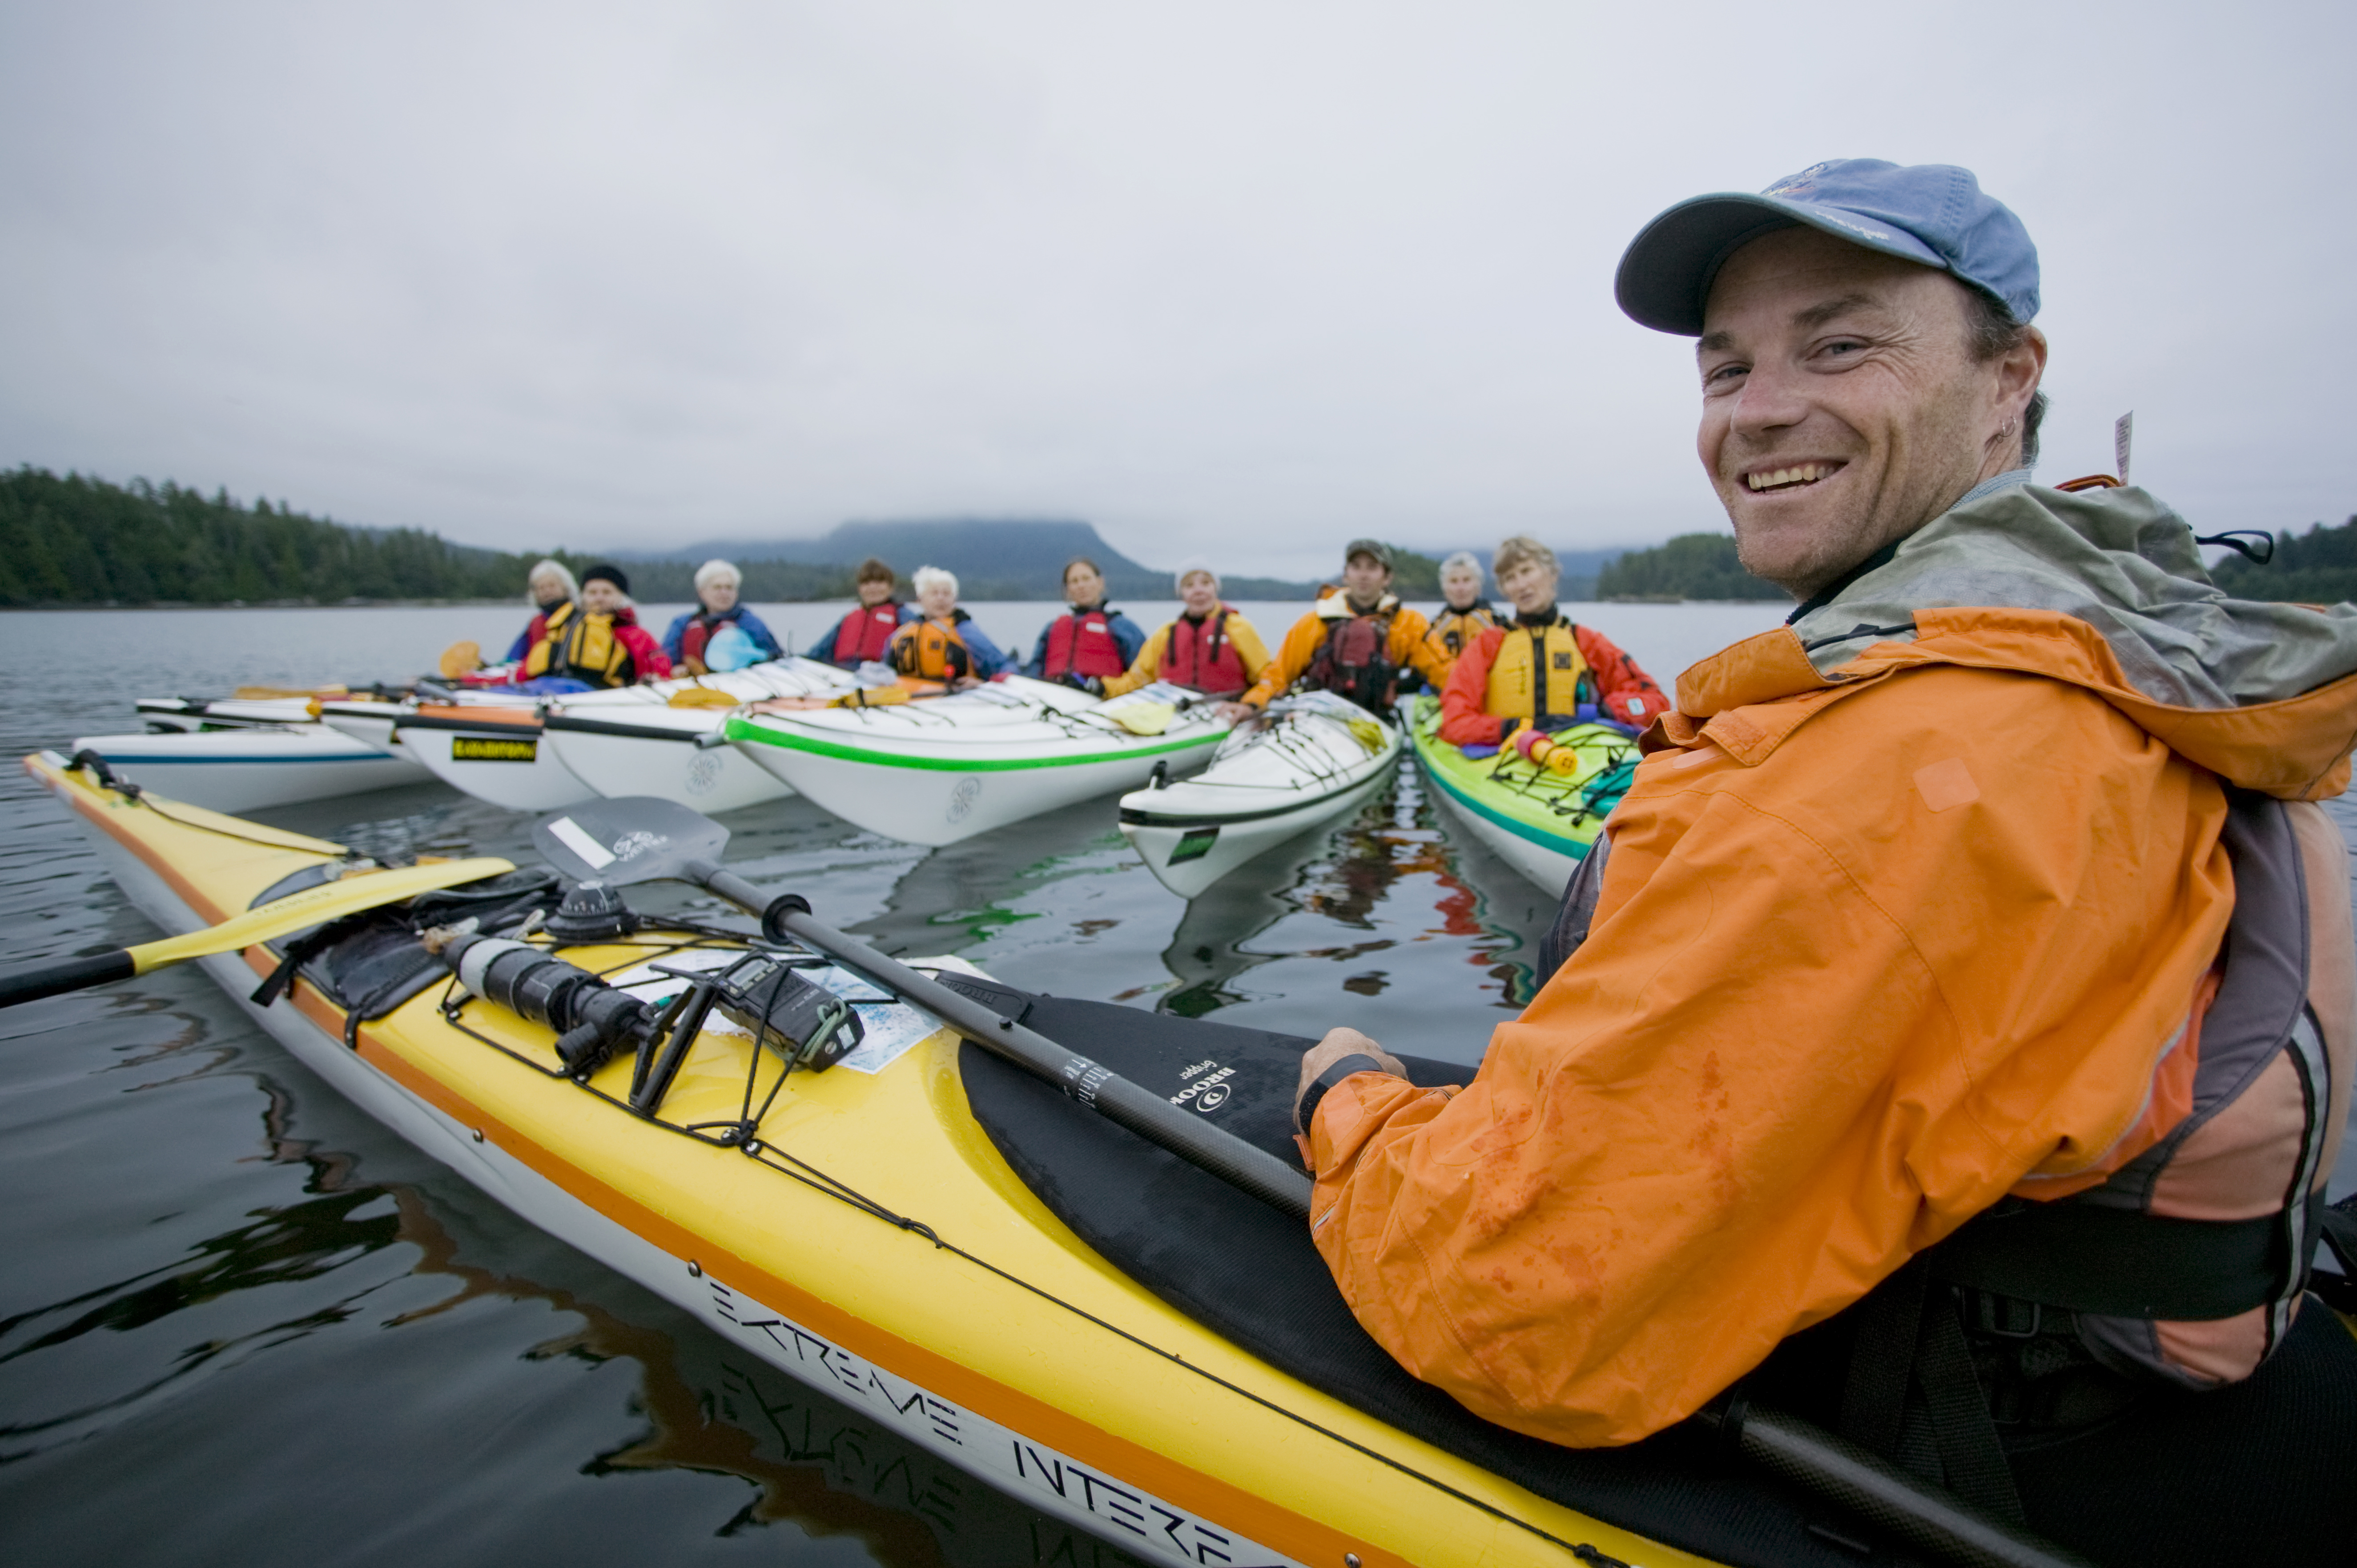 A Kayak guide gives instruction to a group of senior paddlers exploring the area around Spring Island in the Kyuquot Sound area of Northern Vancouver Island. Spring Island, Kyuquot Sound, Vancouver Island, British Columbia, Canada.